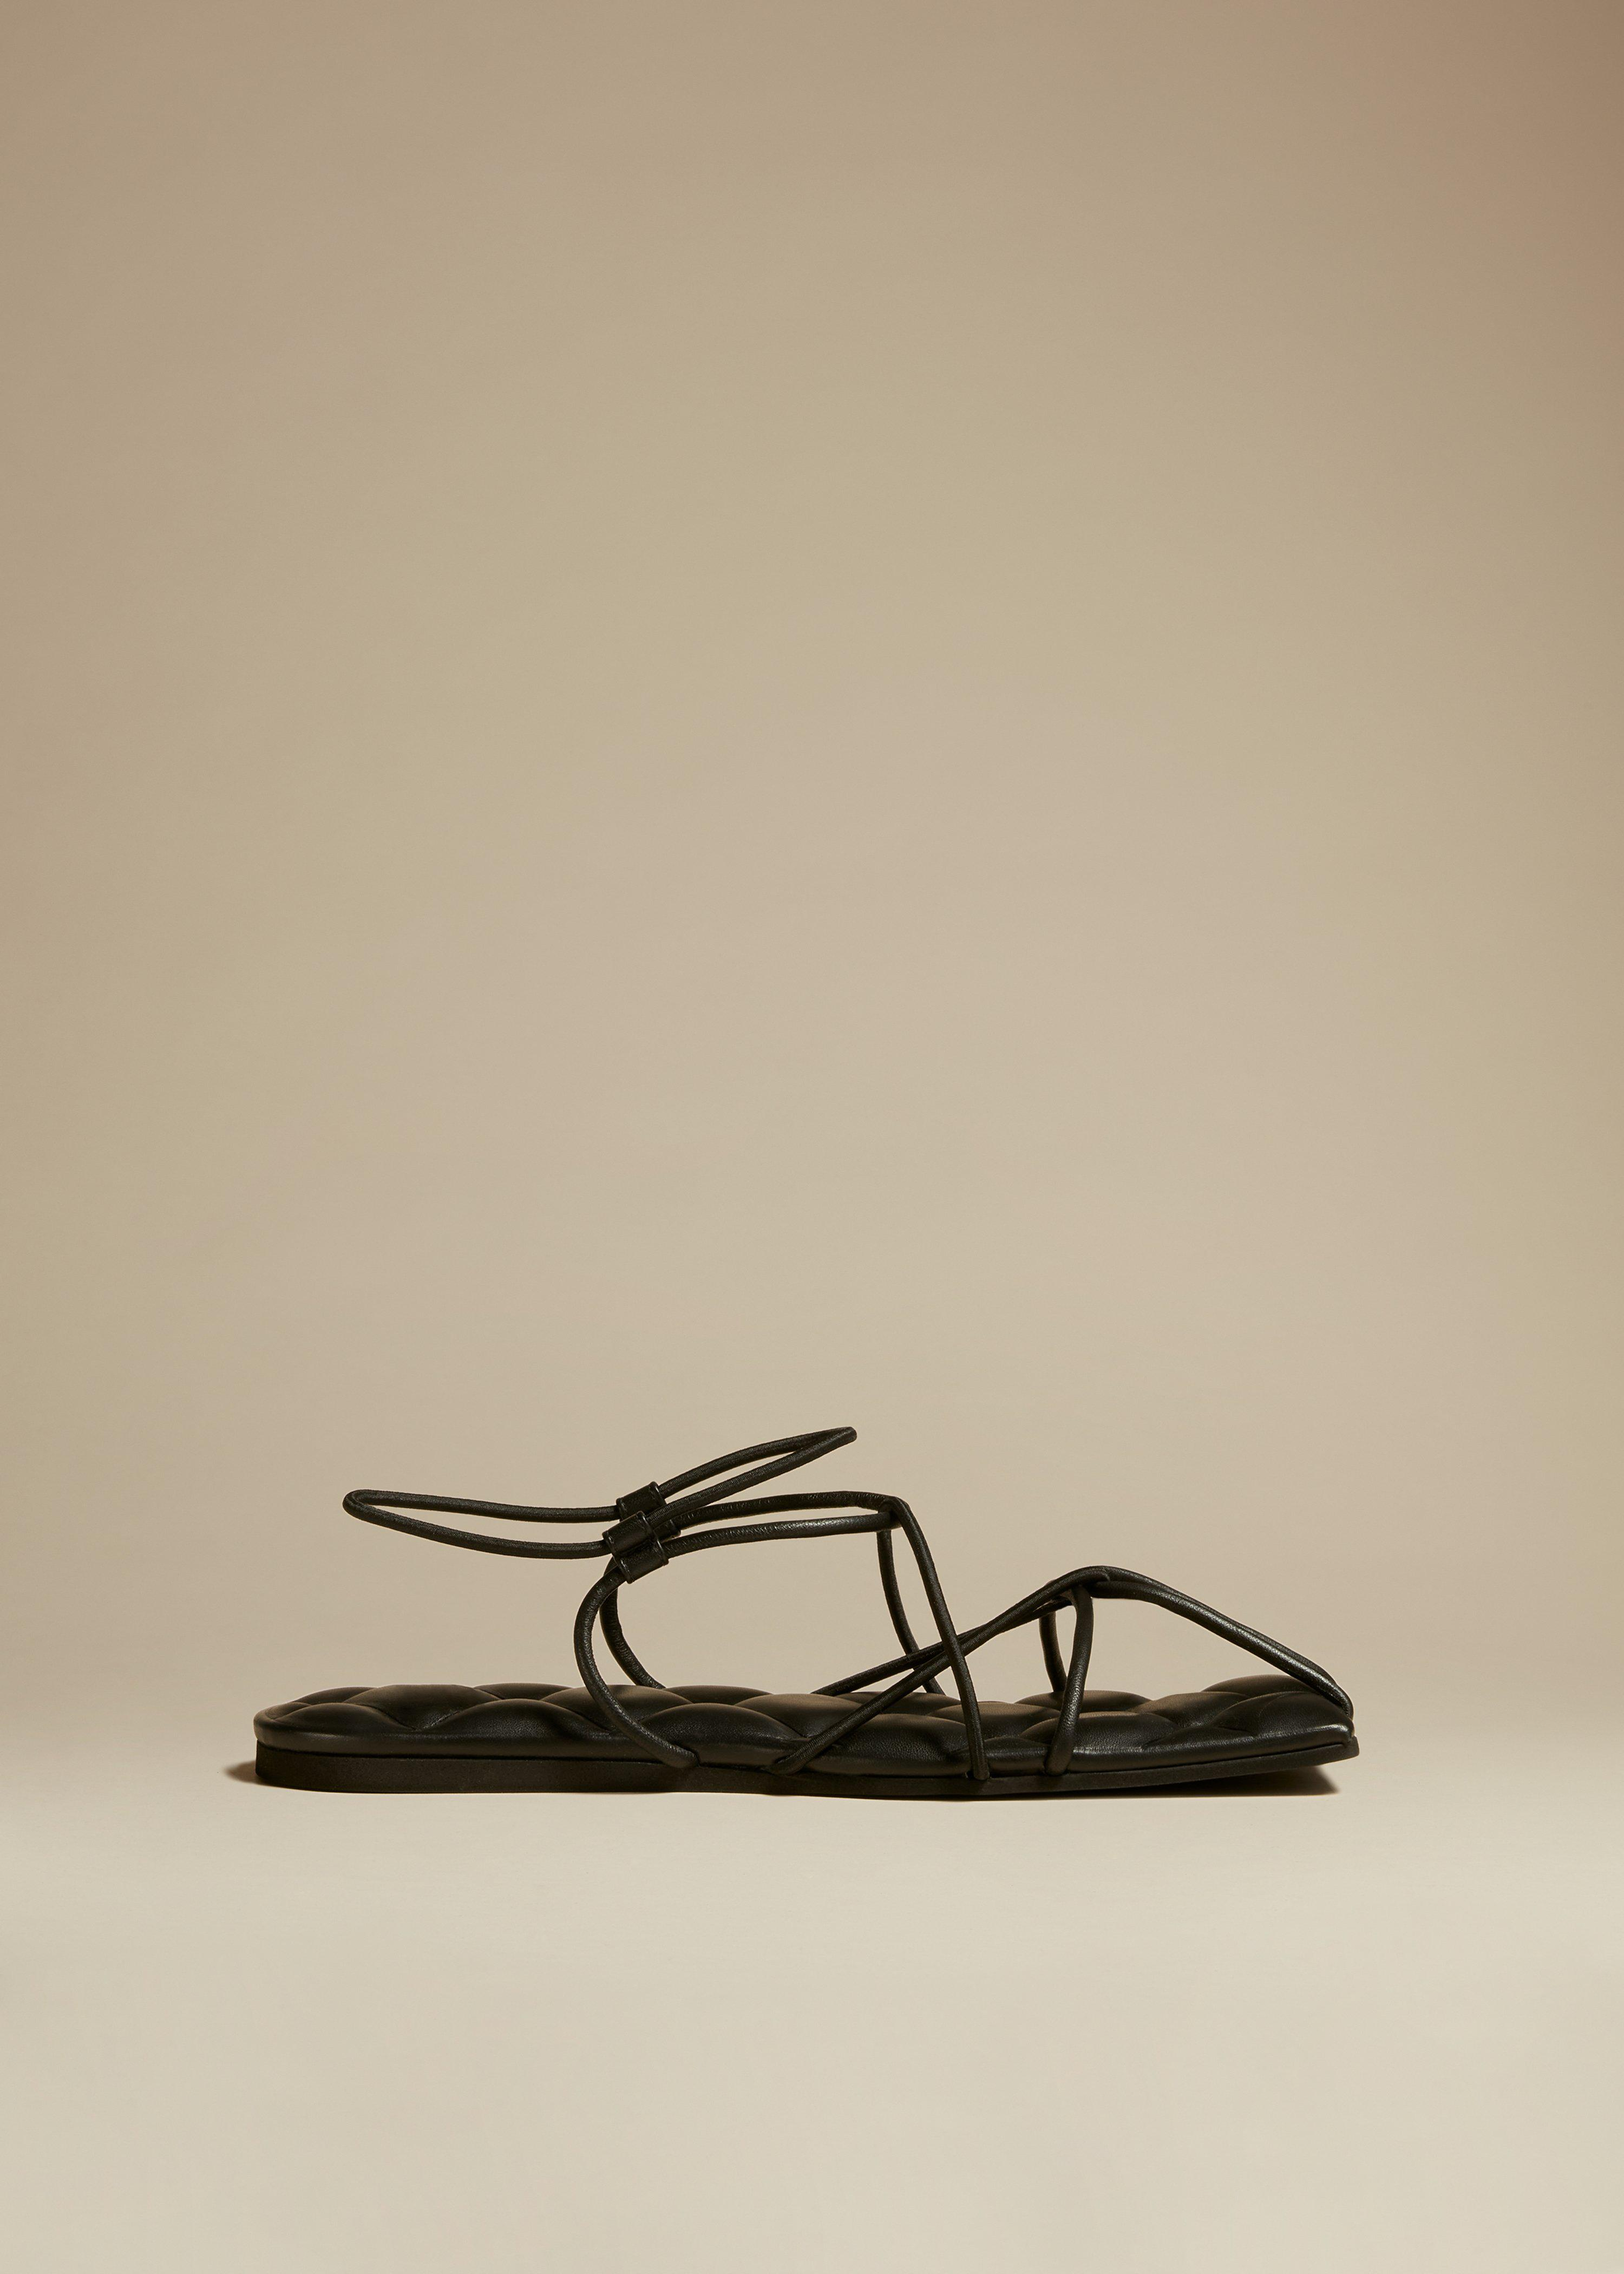 The Patras Sandal in Black Leather